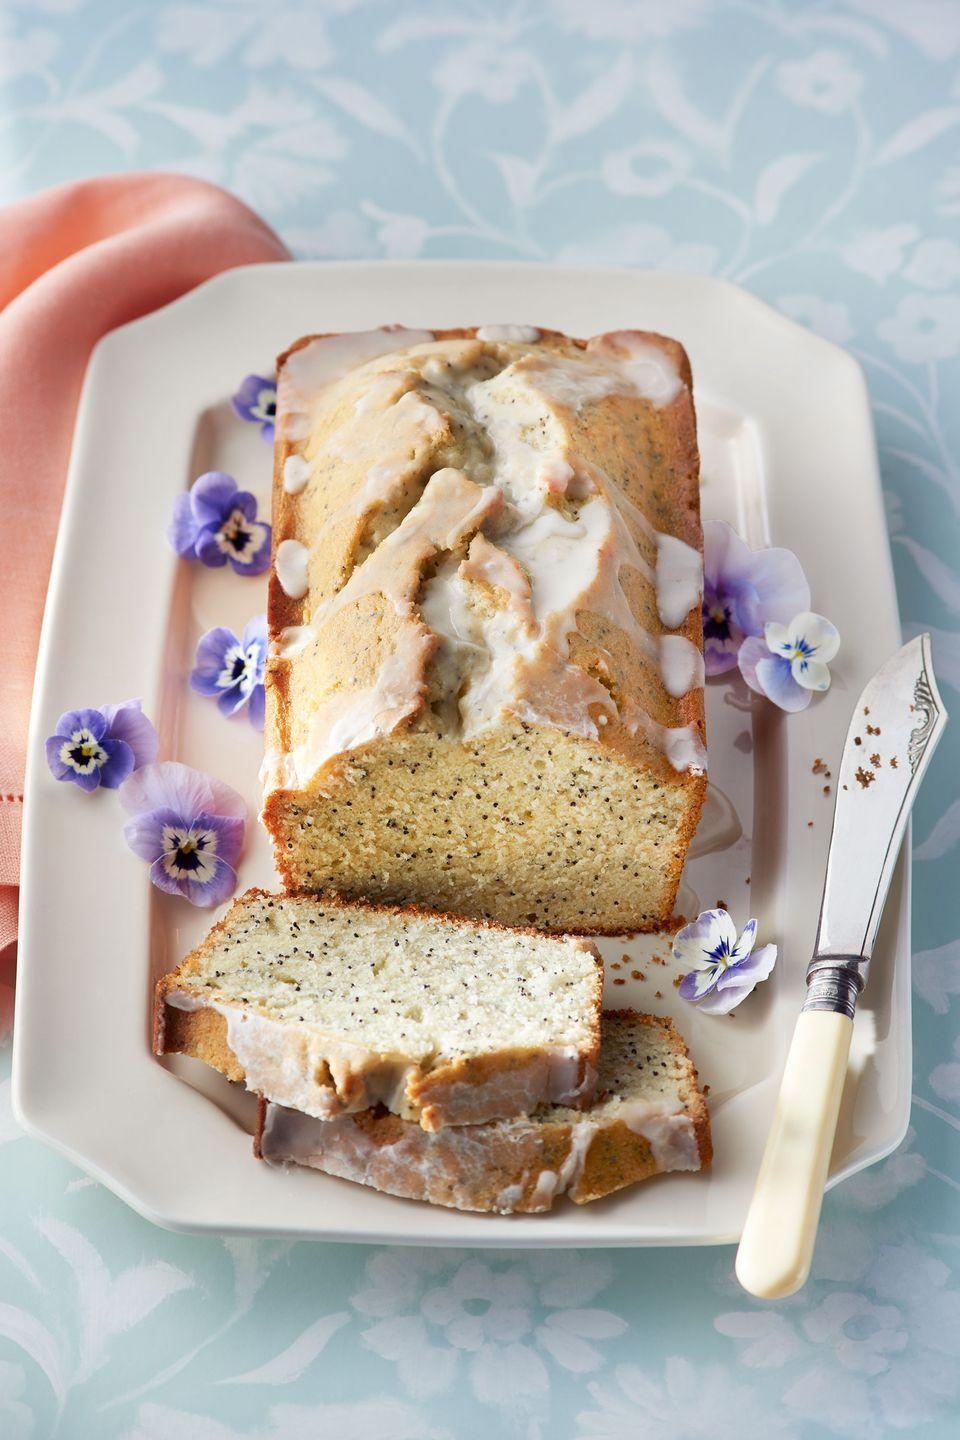 """<p>This moist and fluffy loaf cake is pleasantly sweet. Decorate the platter with small flowers from your garden for a special touch mom will appreciate.</p><p><strong><a href=""""https://www.countryliving.com/food-drinks/recipes/a37725/almond-and-poppy-seed-loaf-cake-recipe/"""" rel=""""nofollow noopener"""" target=""""_blank"""" data-ylk=""""slk:Get the recipe"""" class=""""link rapid-noclick-resp"""">Get the recipe</a>.</strong></p>"""